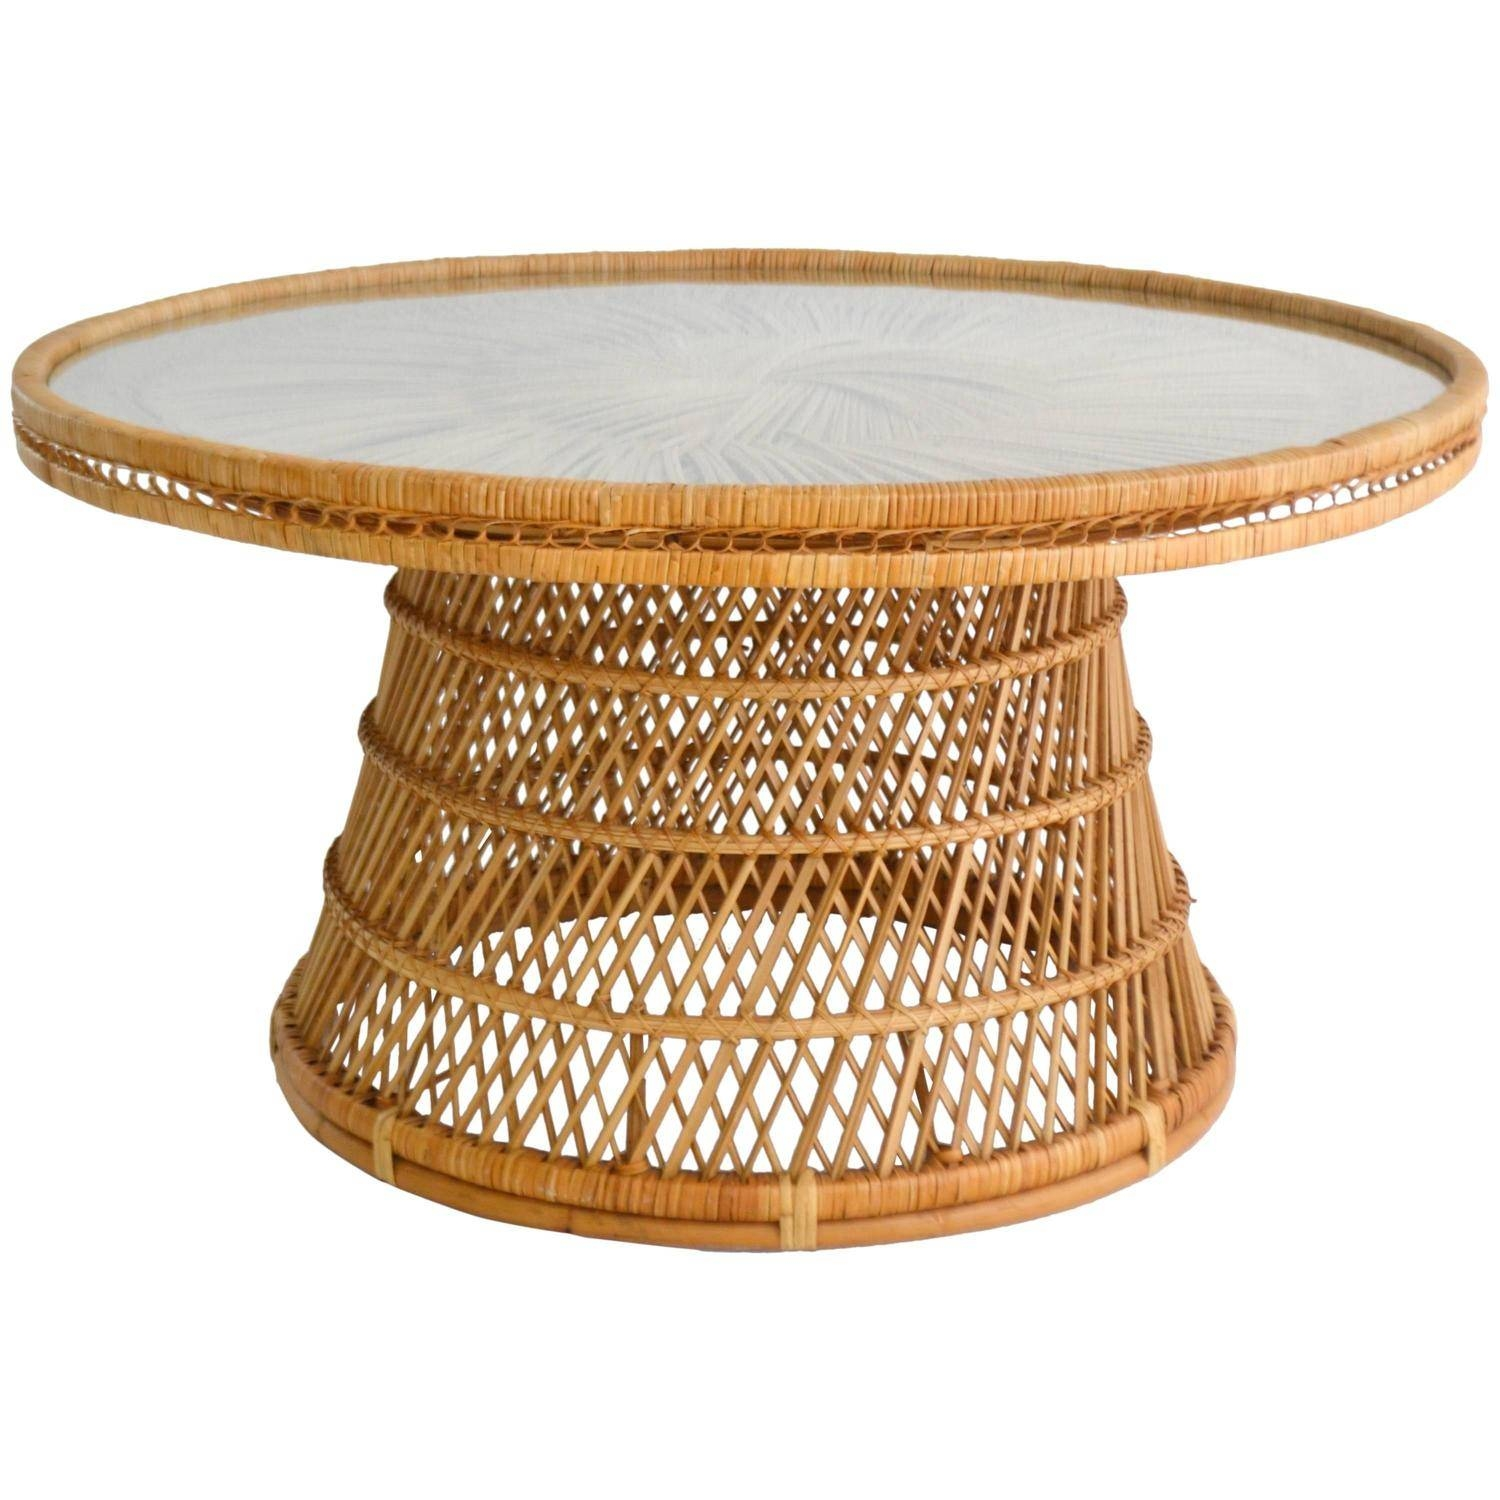 30 Best Collection of Round Woven Coffee Tables